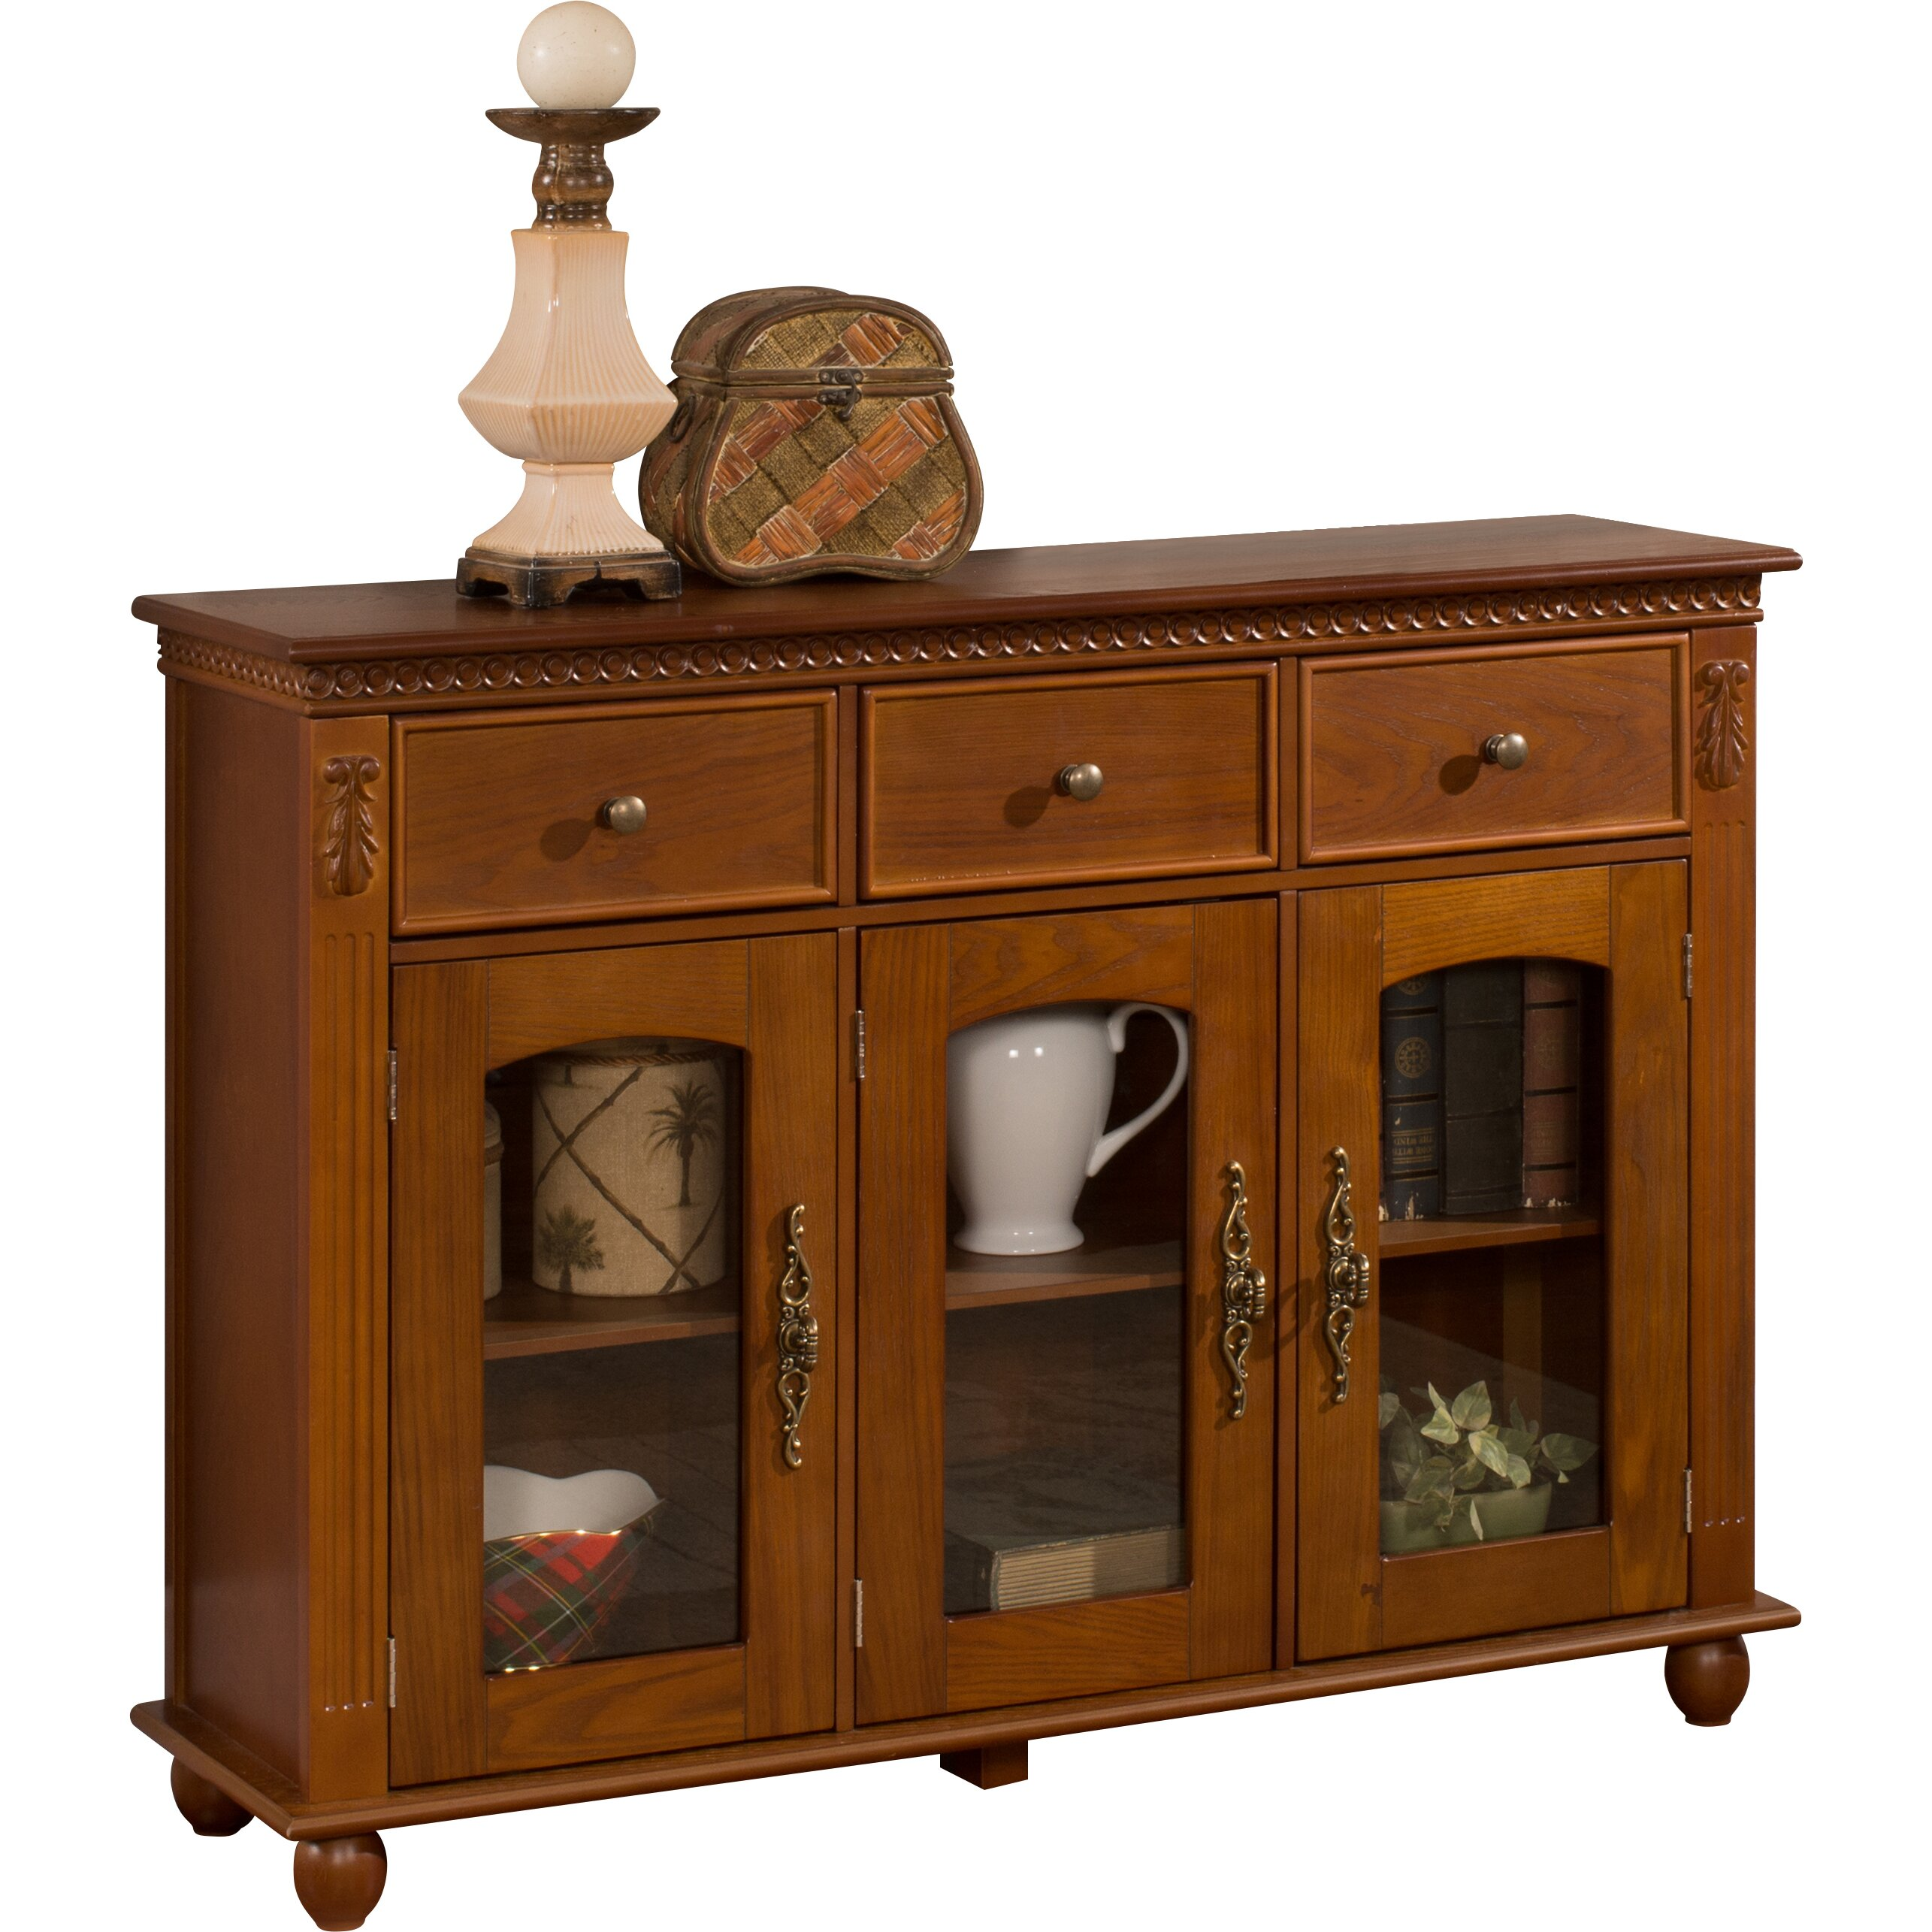 Inroom designs console table cabinet reviews wayfair - Sofa table with cabinets ...